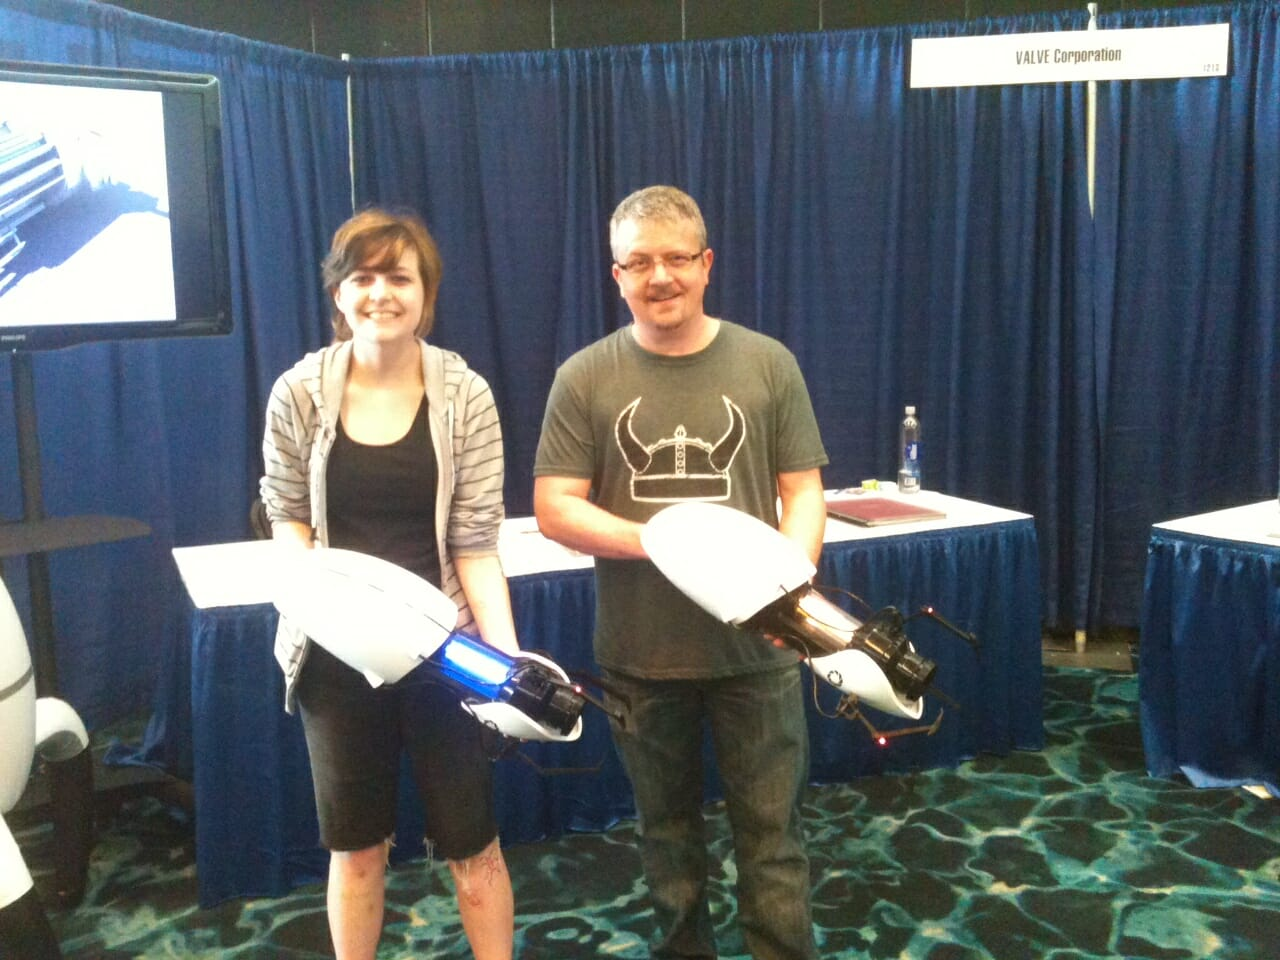 David and Joanne with Portal Guns